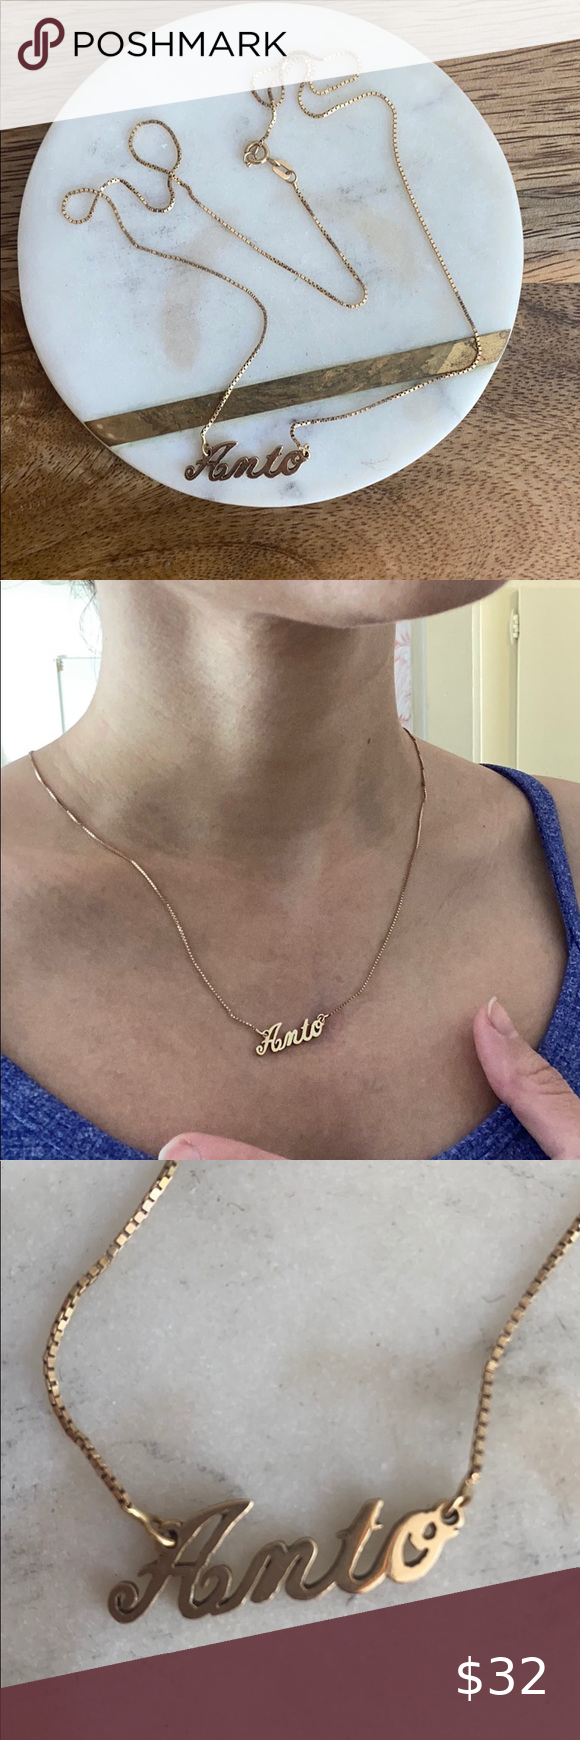 Gold Name Plate Necklace In 2020 Womens Jewelry Necklace 10k Gold Chain Plate Necklace